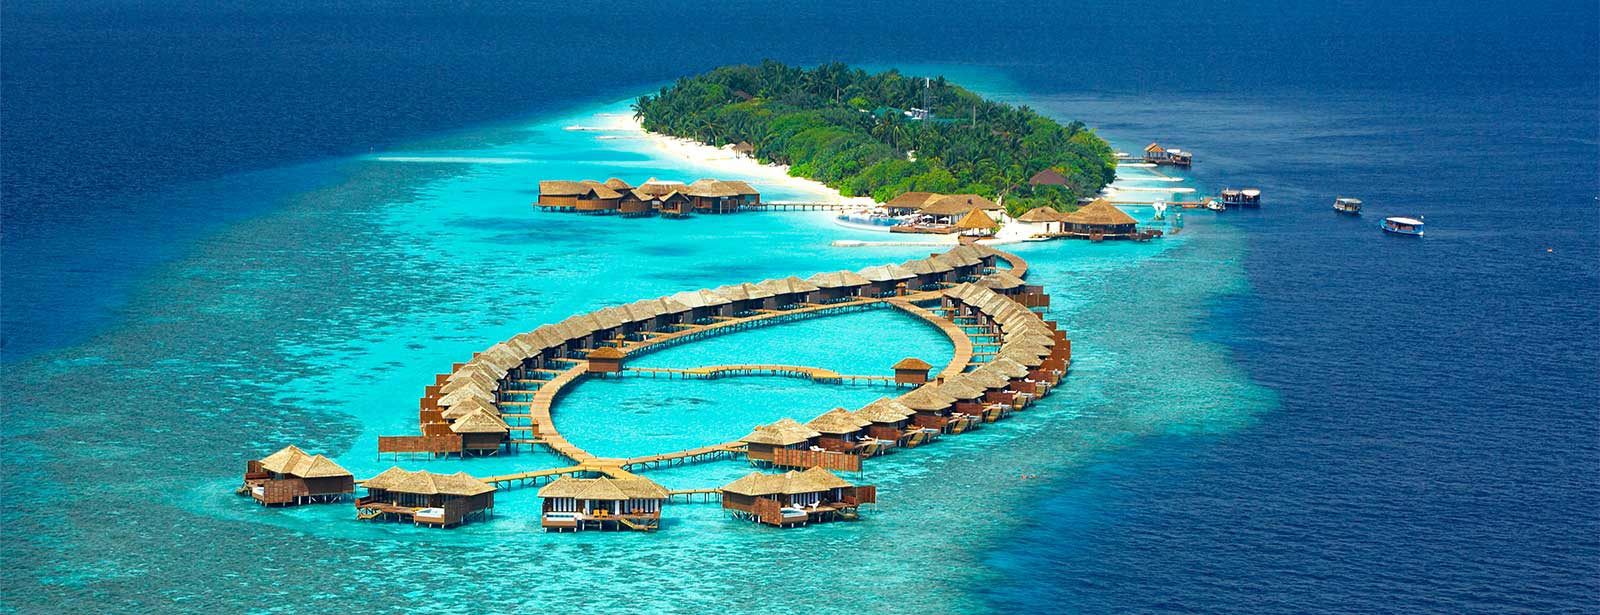 Lily Beach Platinum All Inclusive Maldives Resort Honeymoon Family